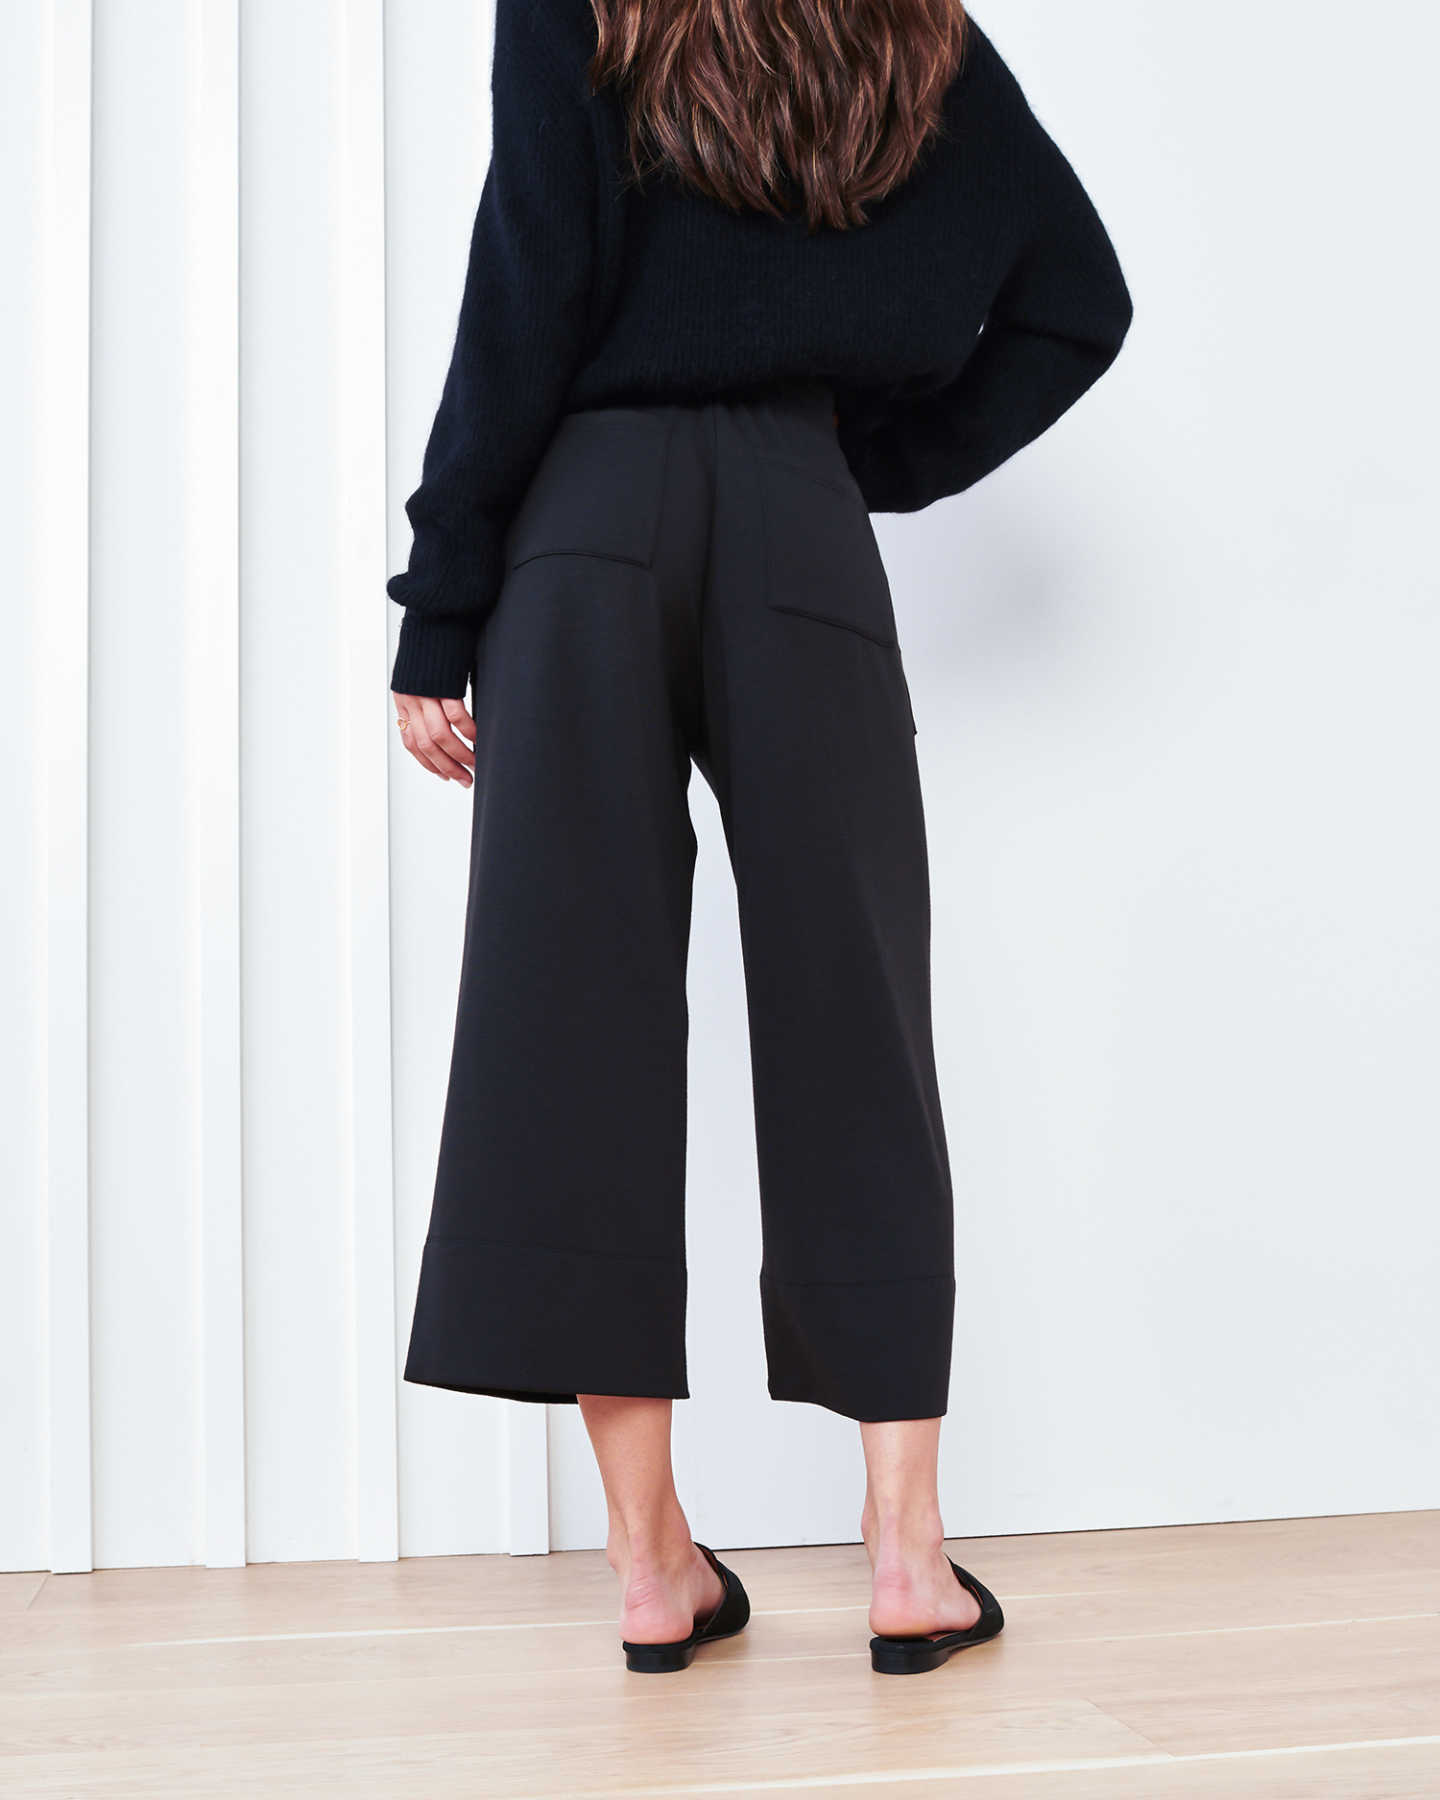 SuperSoft Fleece Wide Leg Pants - Black - 3